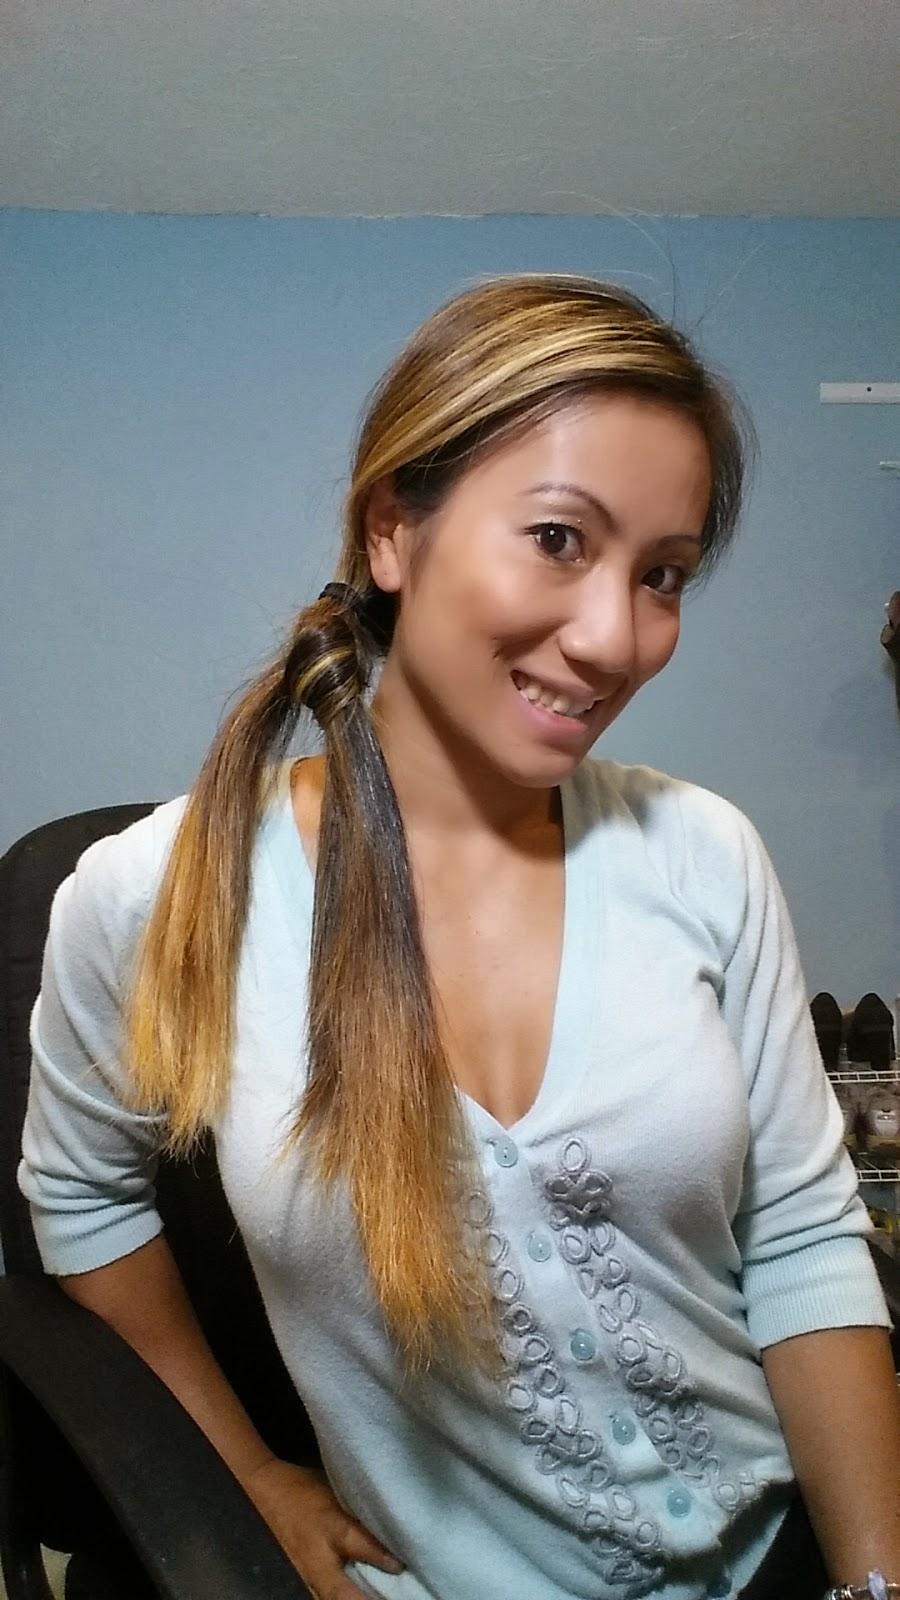 Living busy with janine 2 minute hair for work side hair knot i love hairstyles that are quick easy and you can do yourself in a front of a mirror this is a really chic cute hairstyle you can wear anytime solutioingenieria Image collections